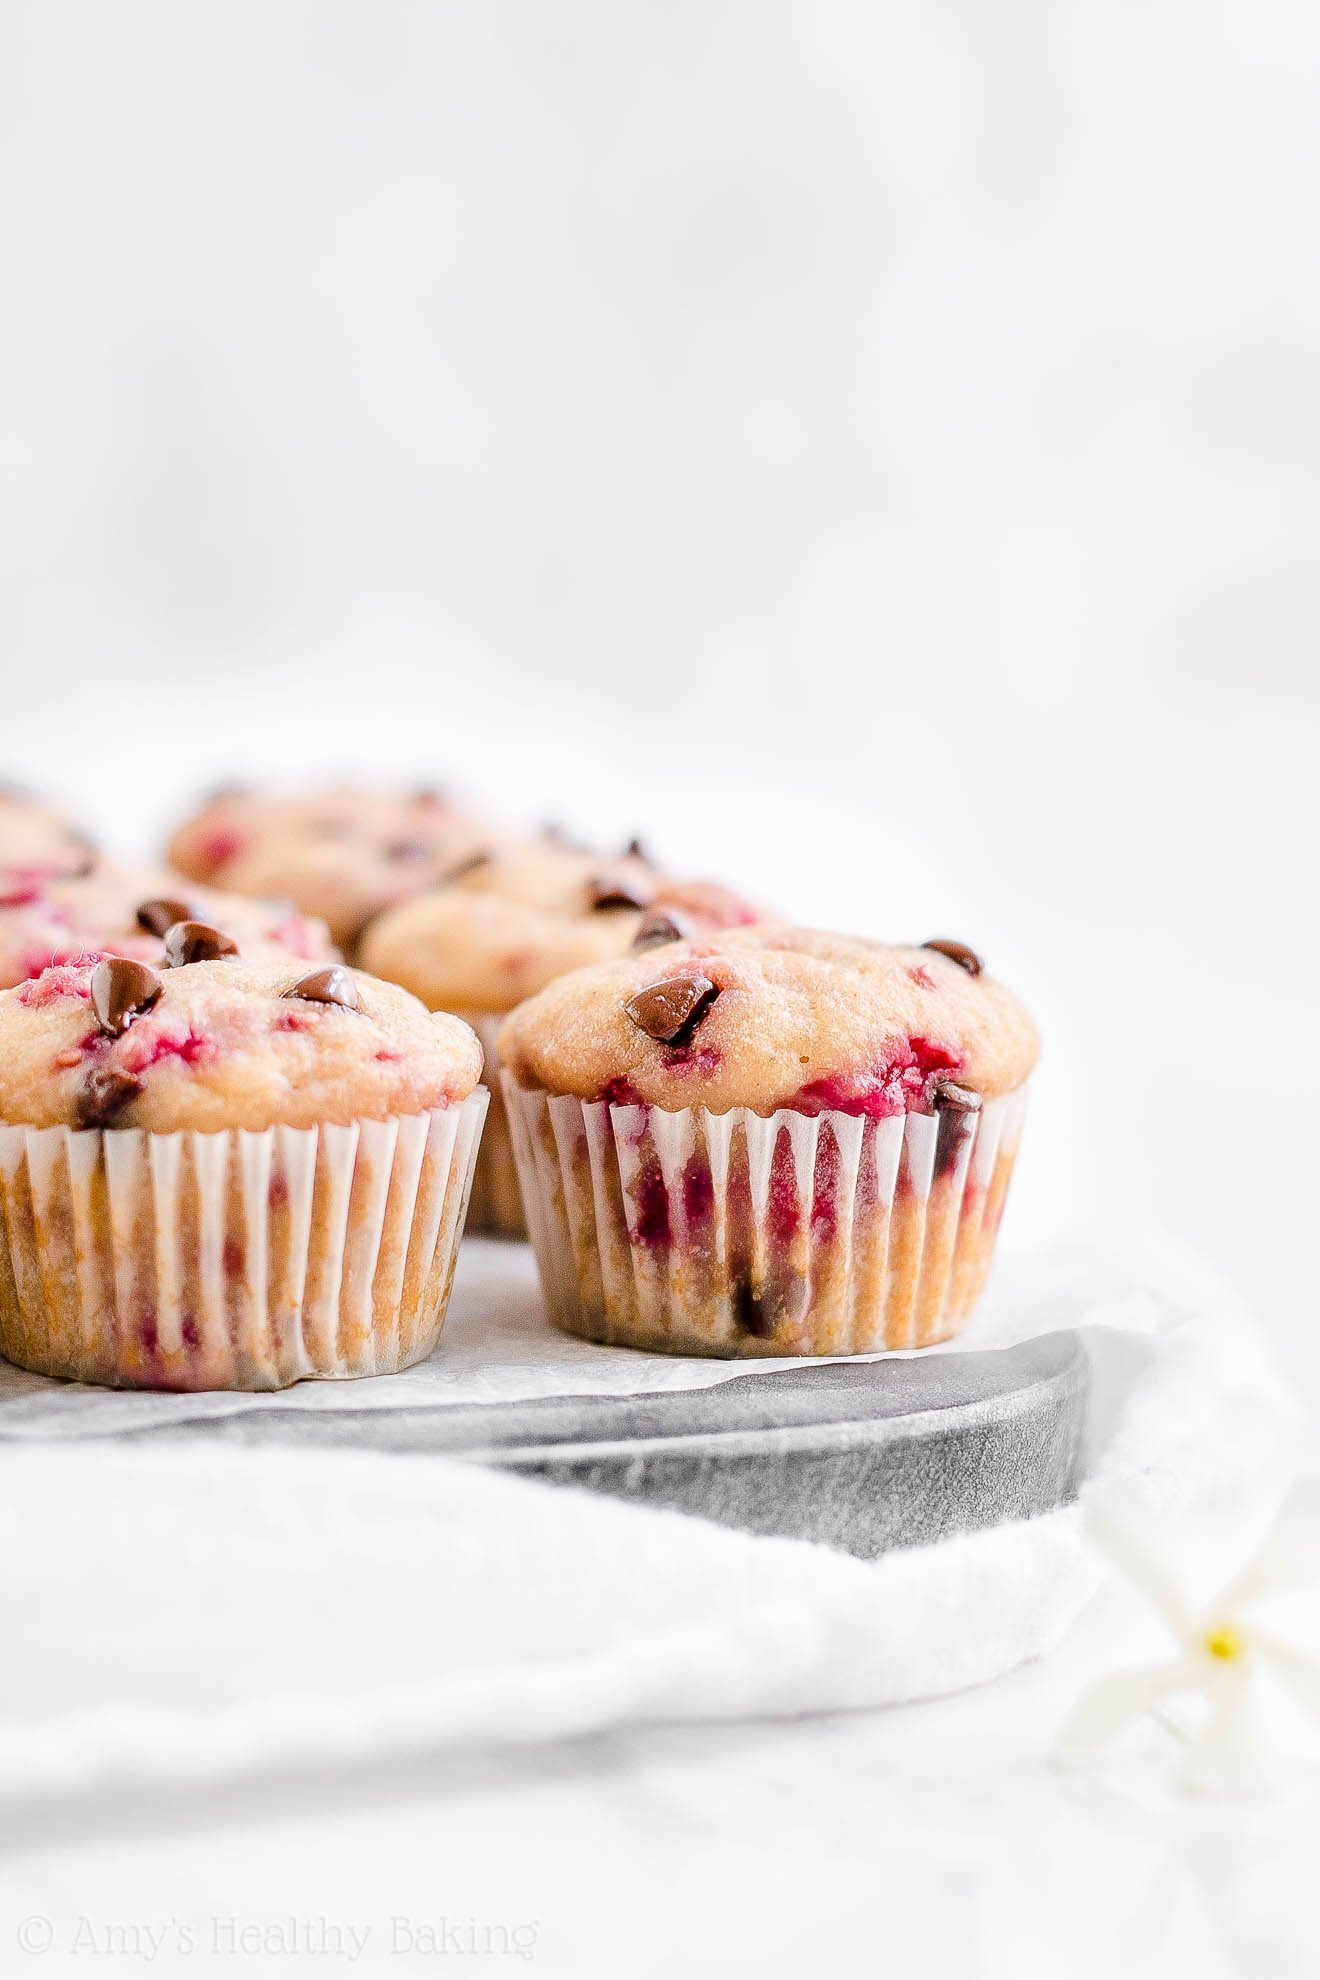 Healthy Low Calorie Sugar Free Raspberry Chocolate Chip Mini Muffins